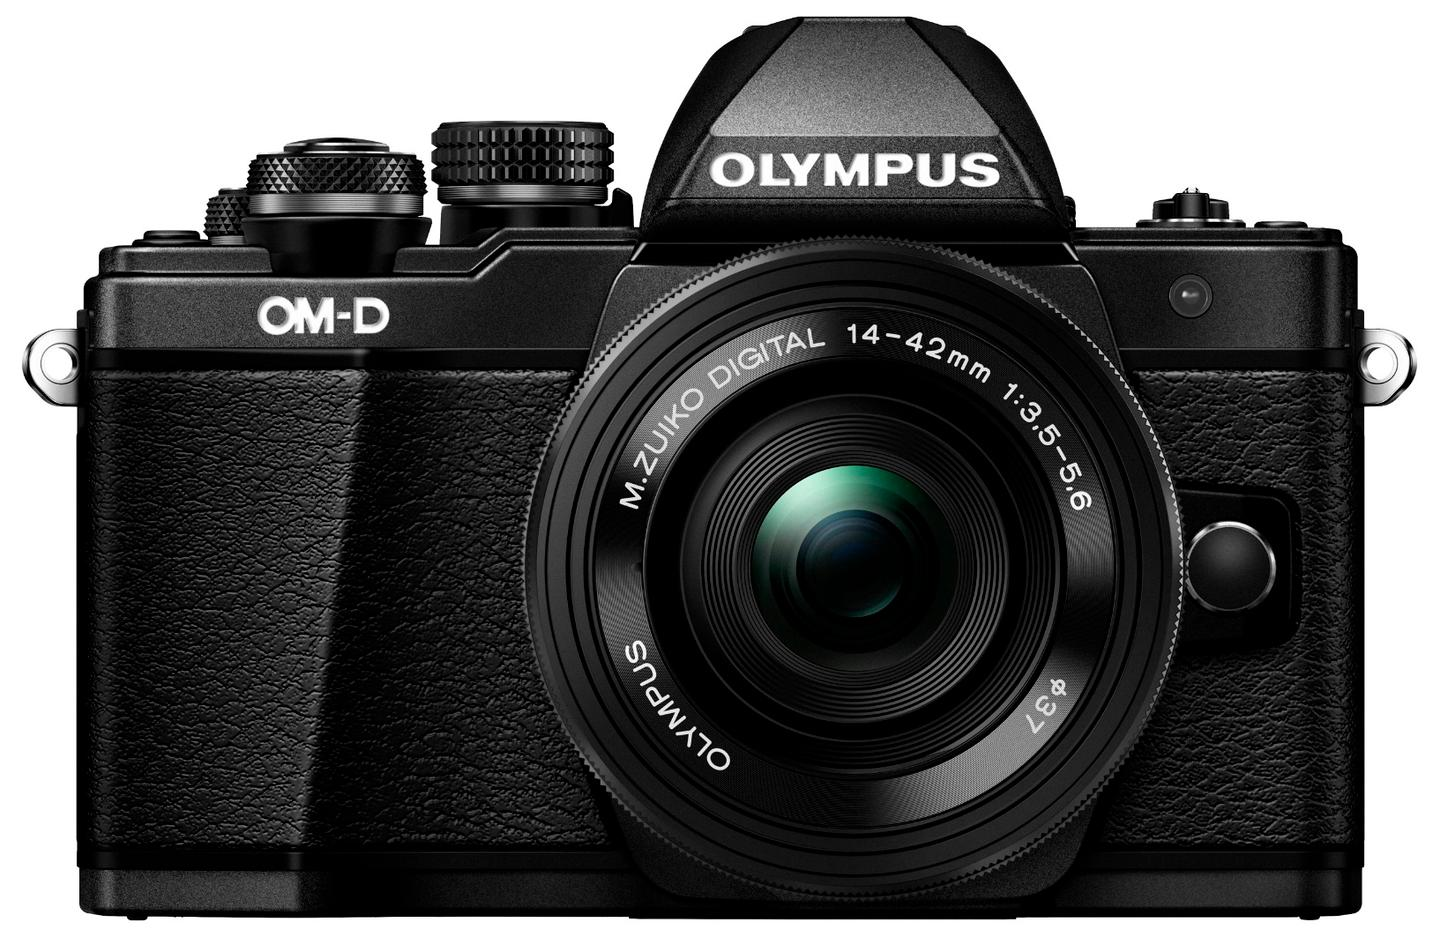 The Olympus OM-D E-M10 Mark II will be available from the end of August priced at US$650 body-only, or bundled with a 14-42-mm lens for $800